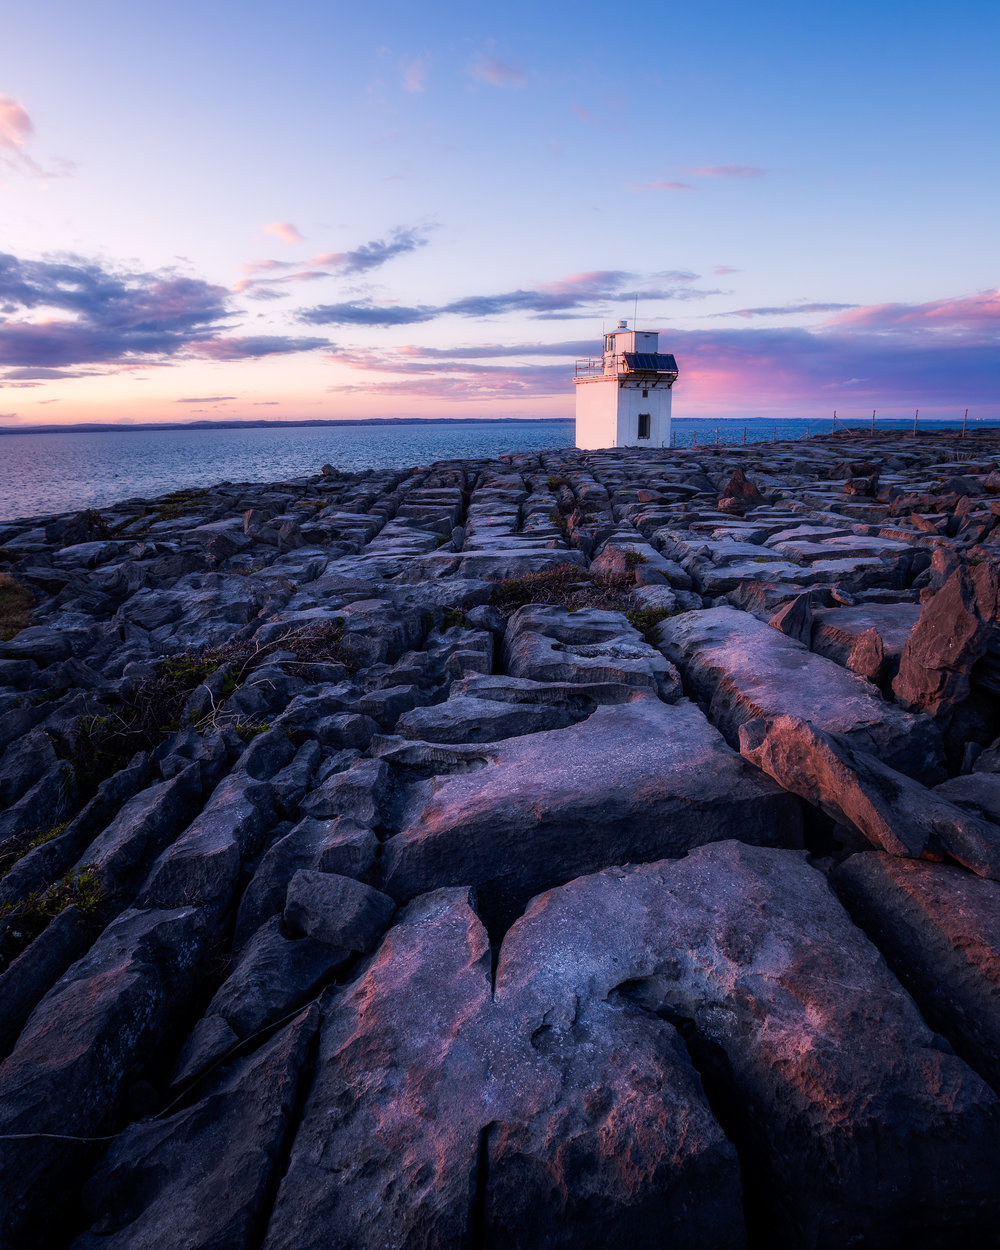 The Burren by Mike O'Leary - Greengraf Photography--3.jpg